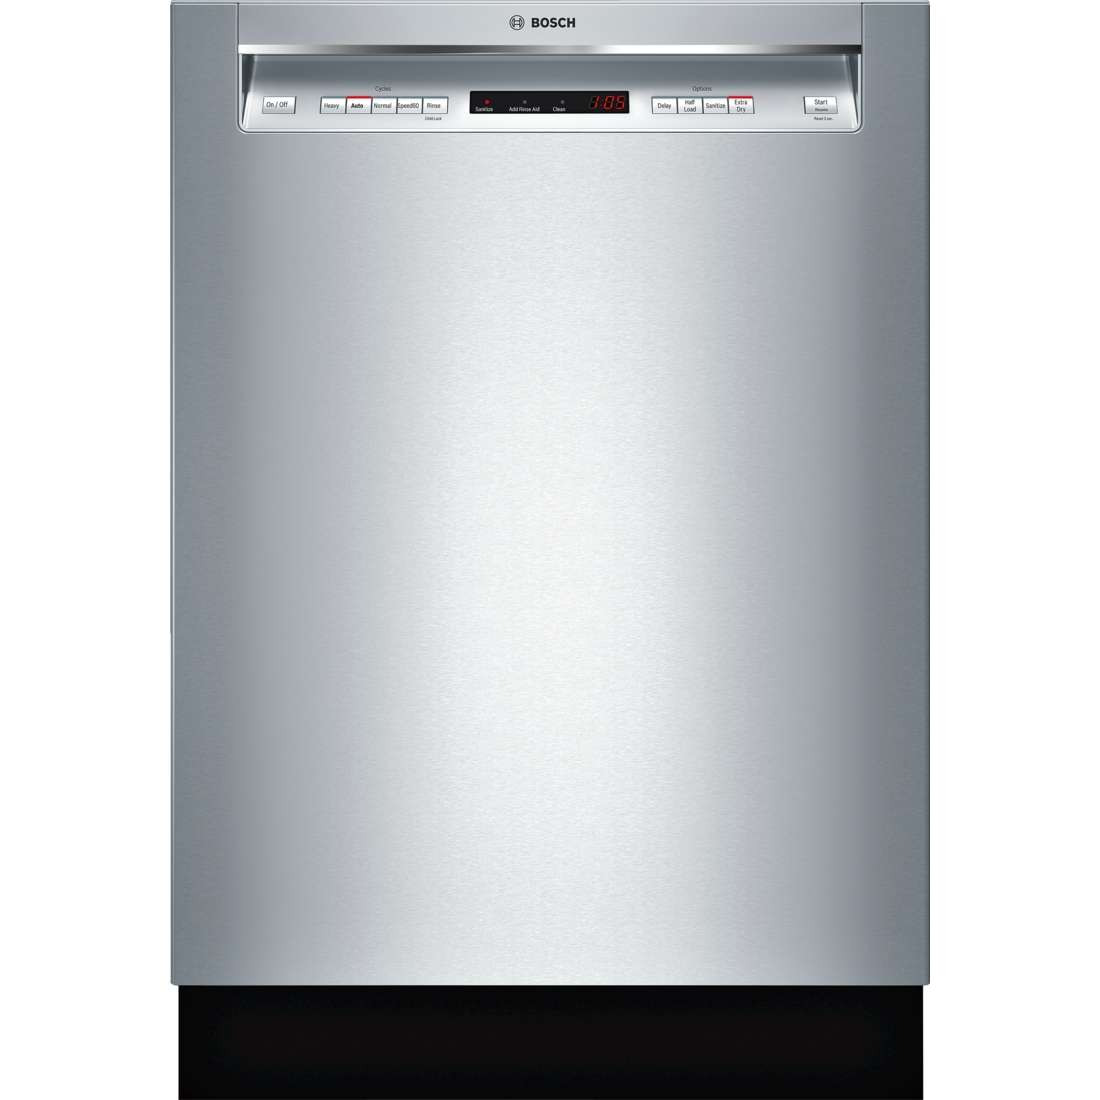 Whirlpool Wdf518saaw Whirlpool 18 In 57 Decibel Built In: Semi-Integrated Dishwashers